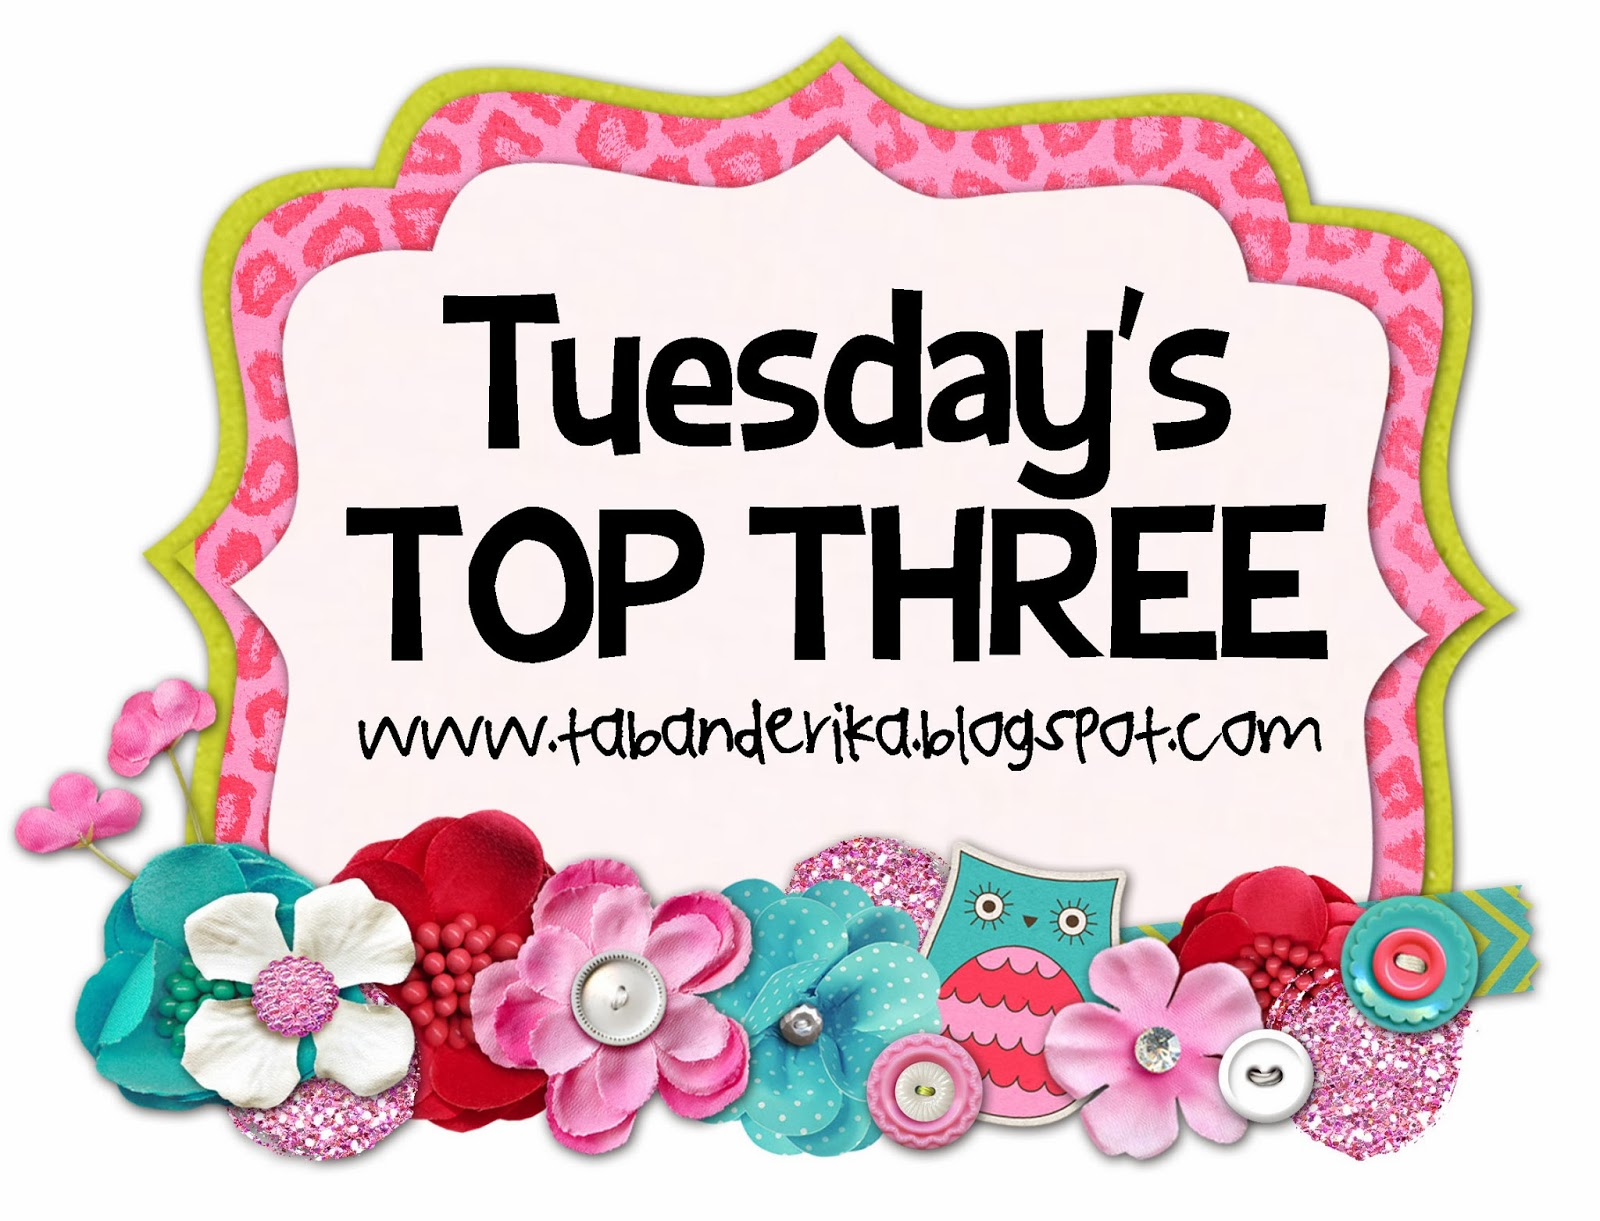 tuesday's top three-halloween candy | the slaughters